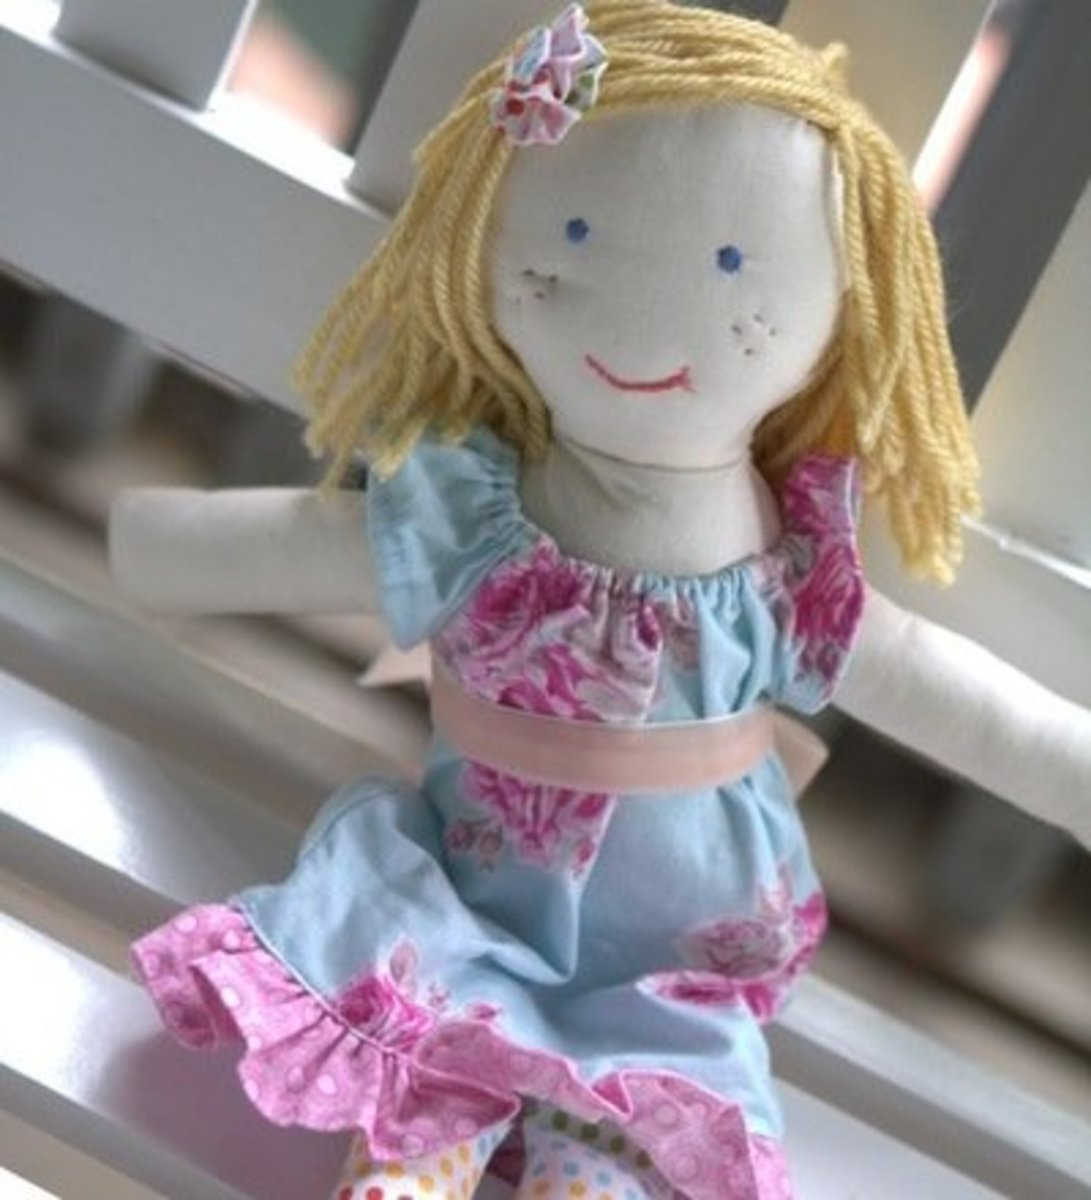 27 All Free Doll Making Patterns Hubpages